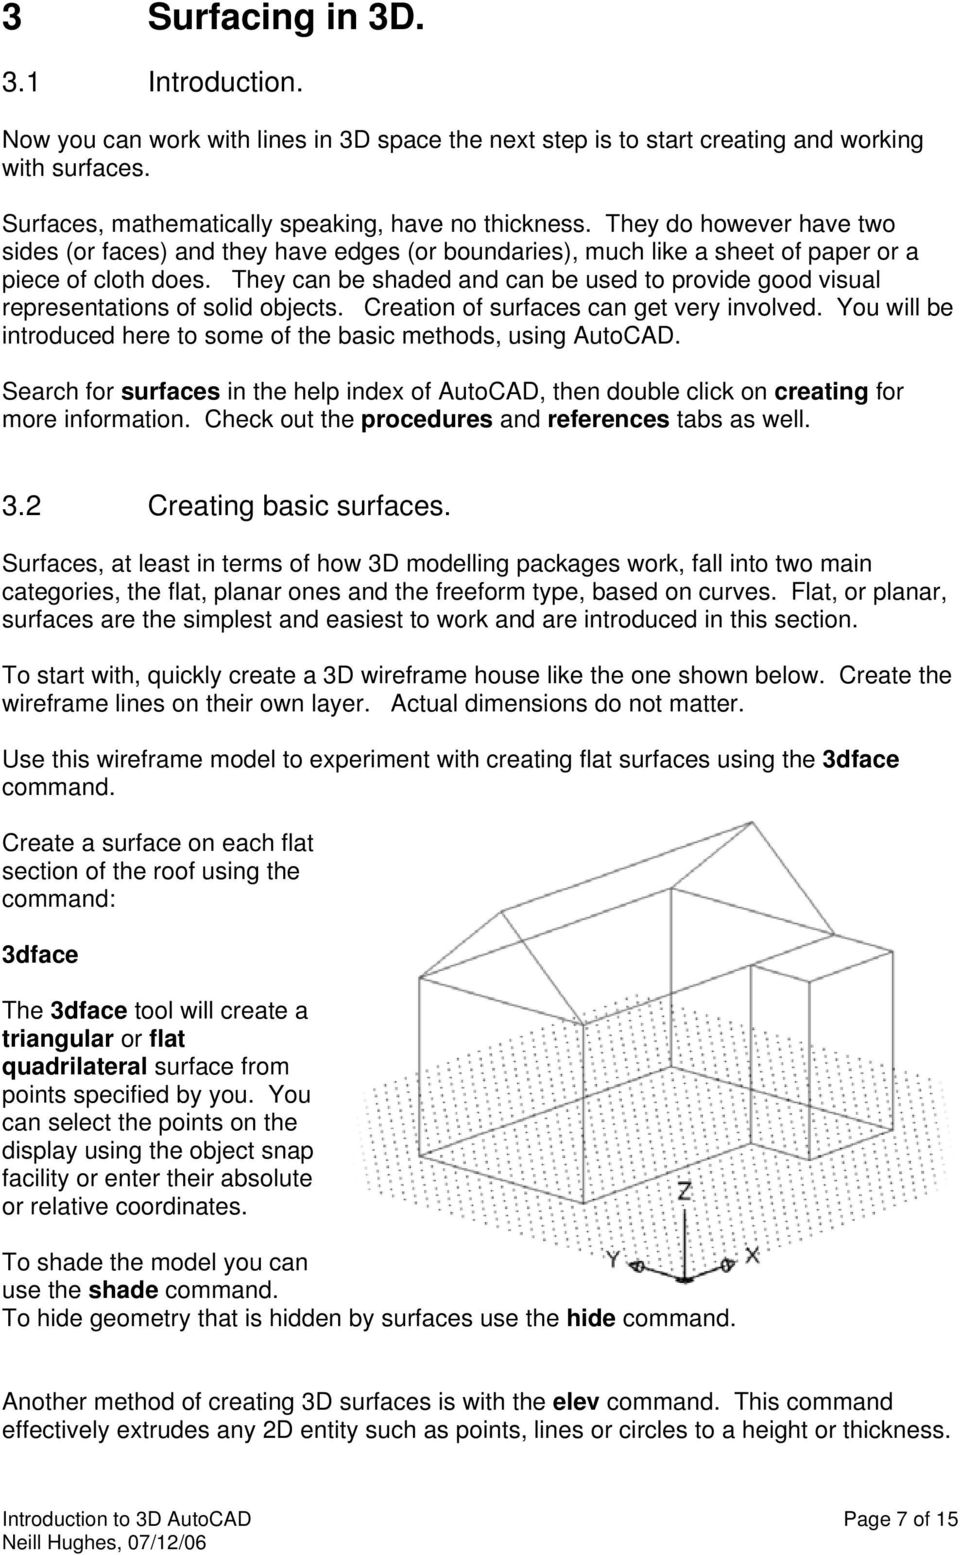 An introduction to 3D draughting & solid modelling using AutoCAD - PDF